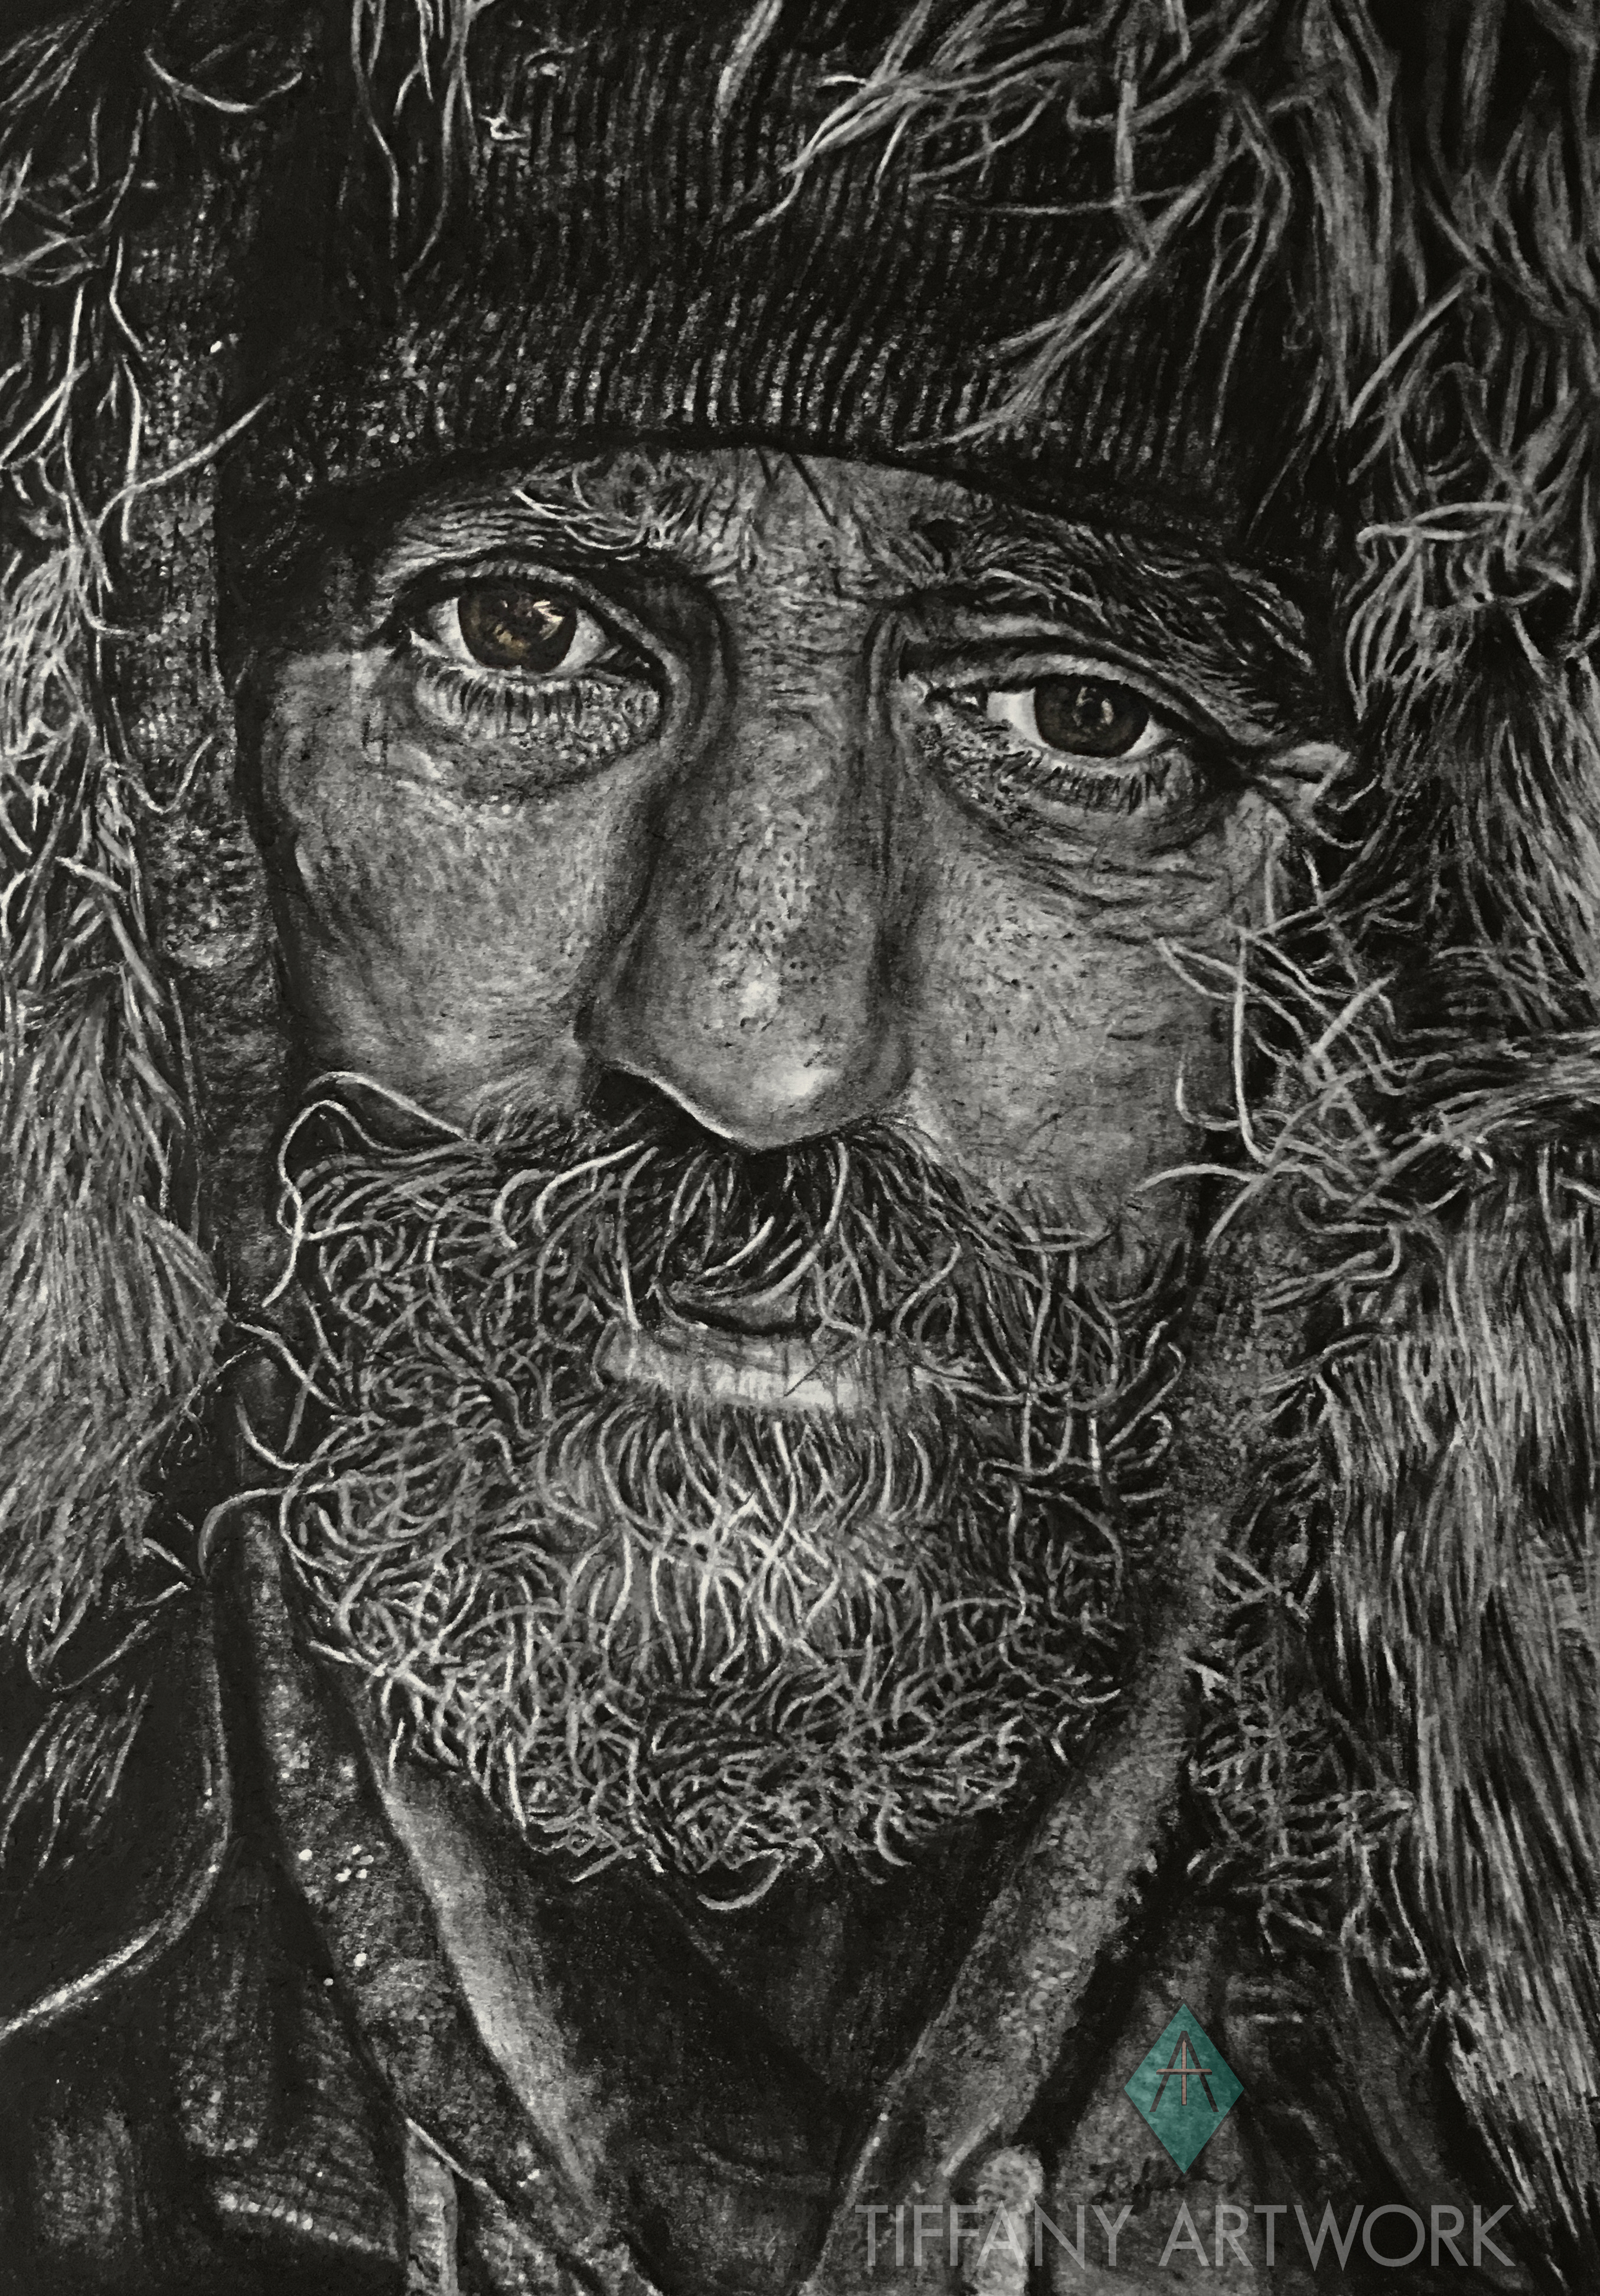 hyperrealistic charcoal portrait hand drawn of homeless man. beard and hood and light eyes